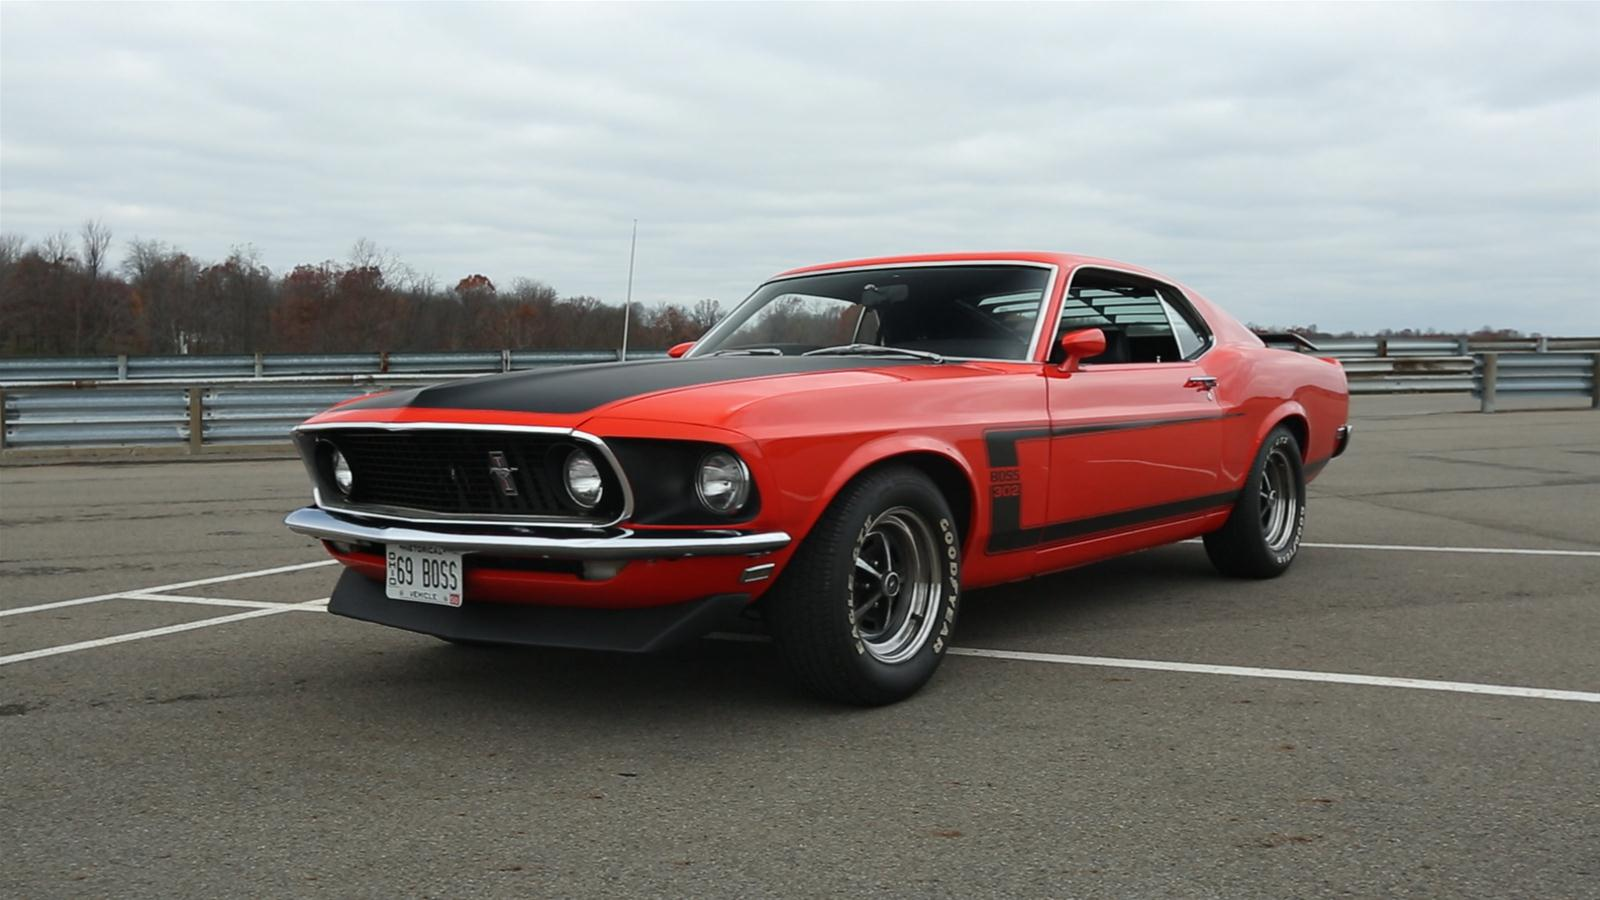 Fat n furious 1969 ford mustang boss 302 engine combos sum csumfffm20 free shipping on orders over 99 at summit racing